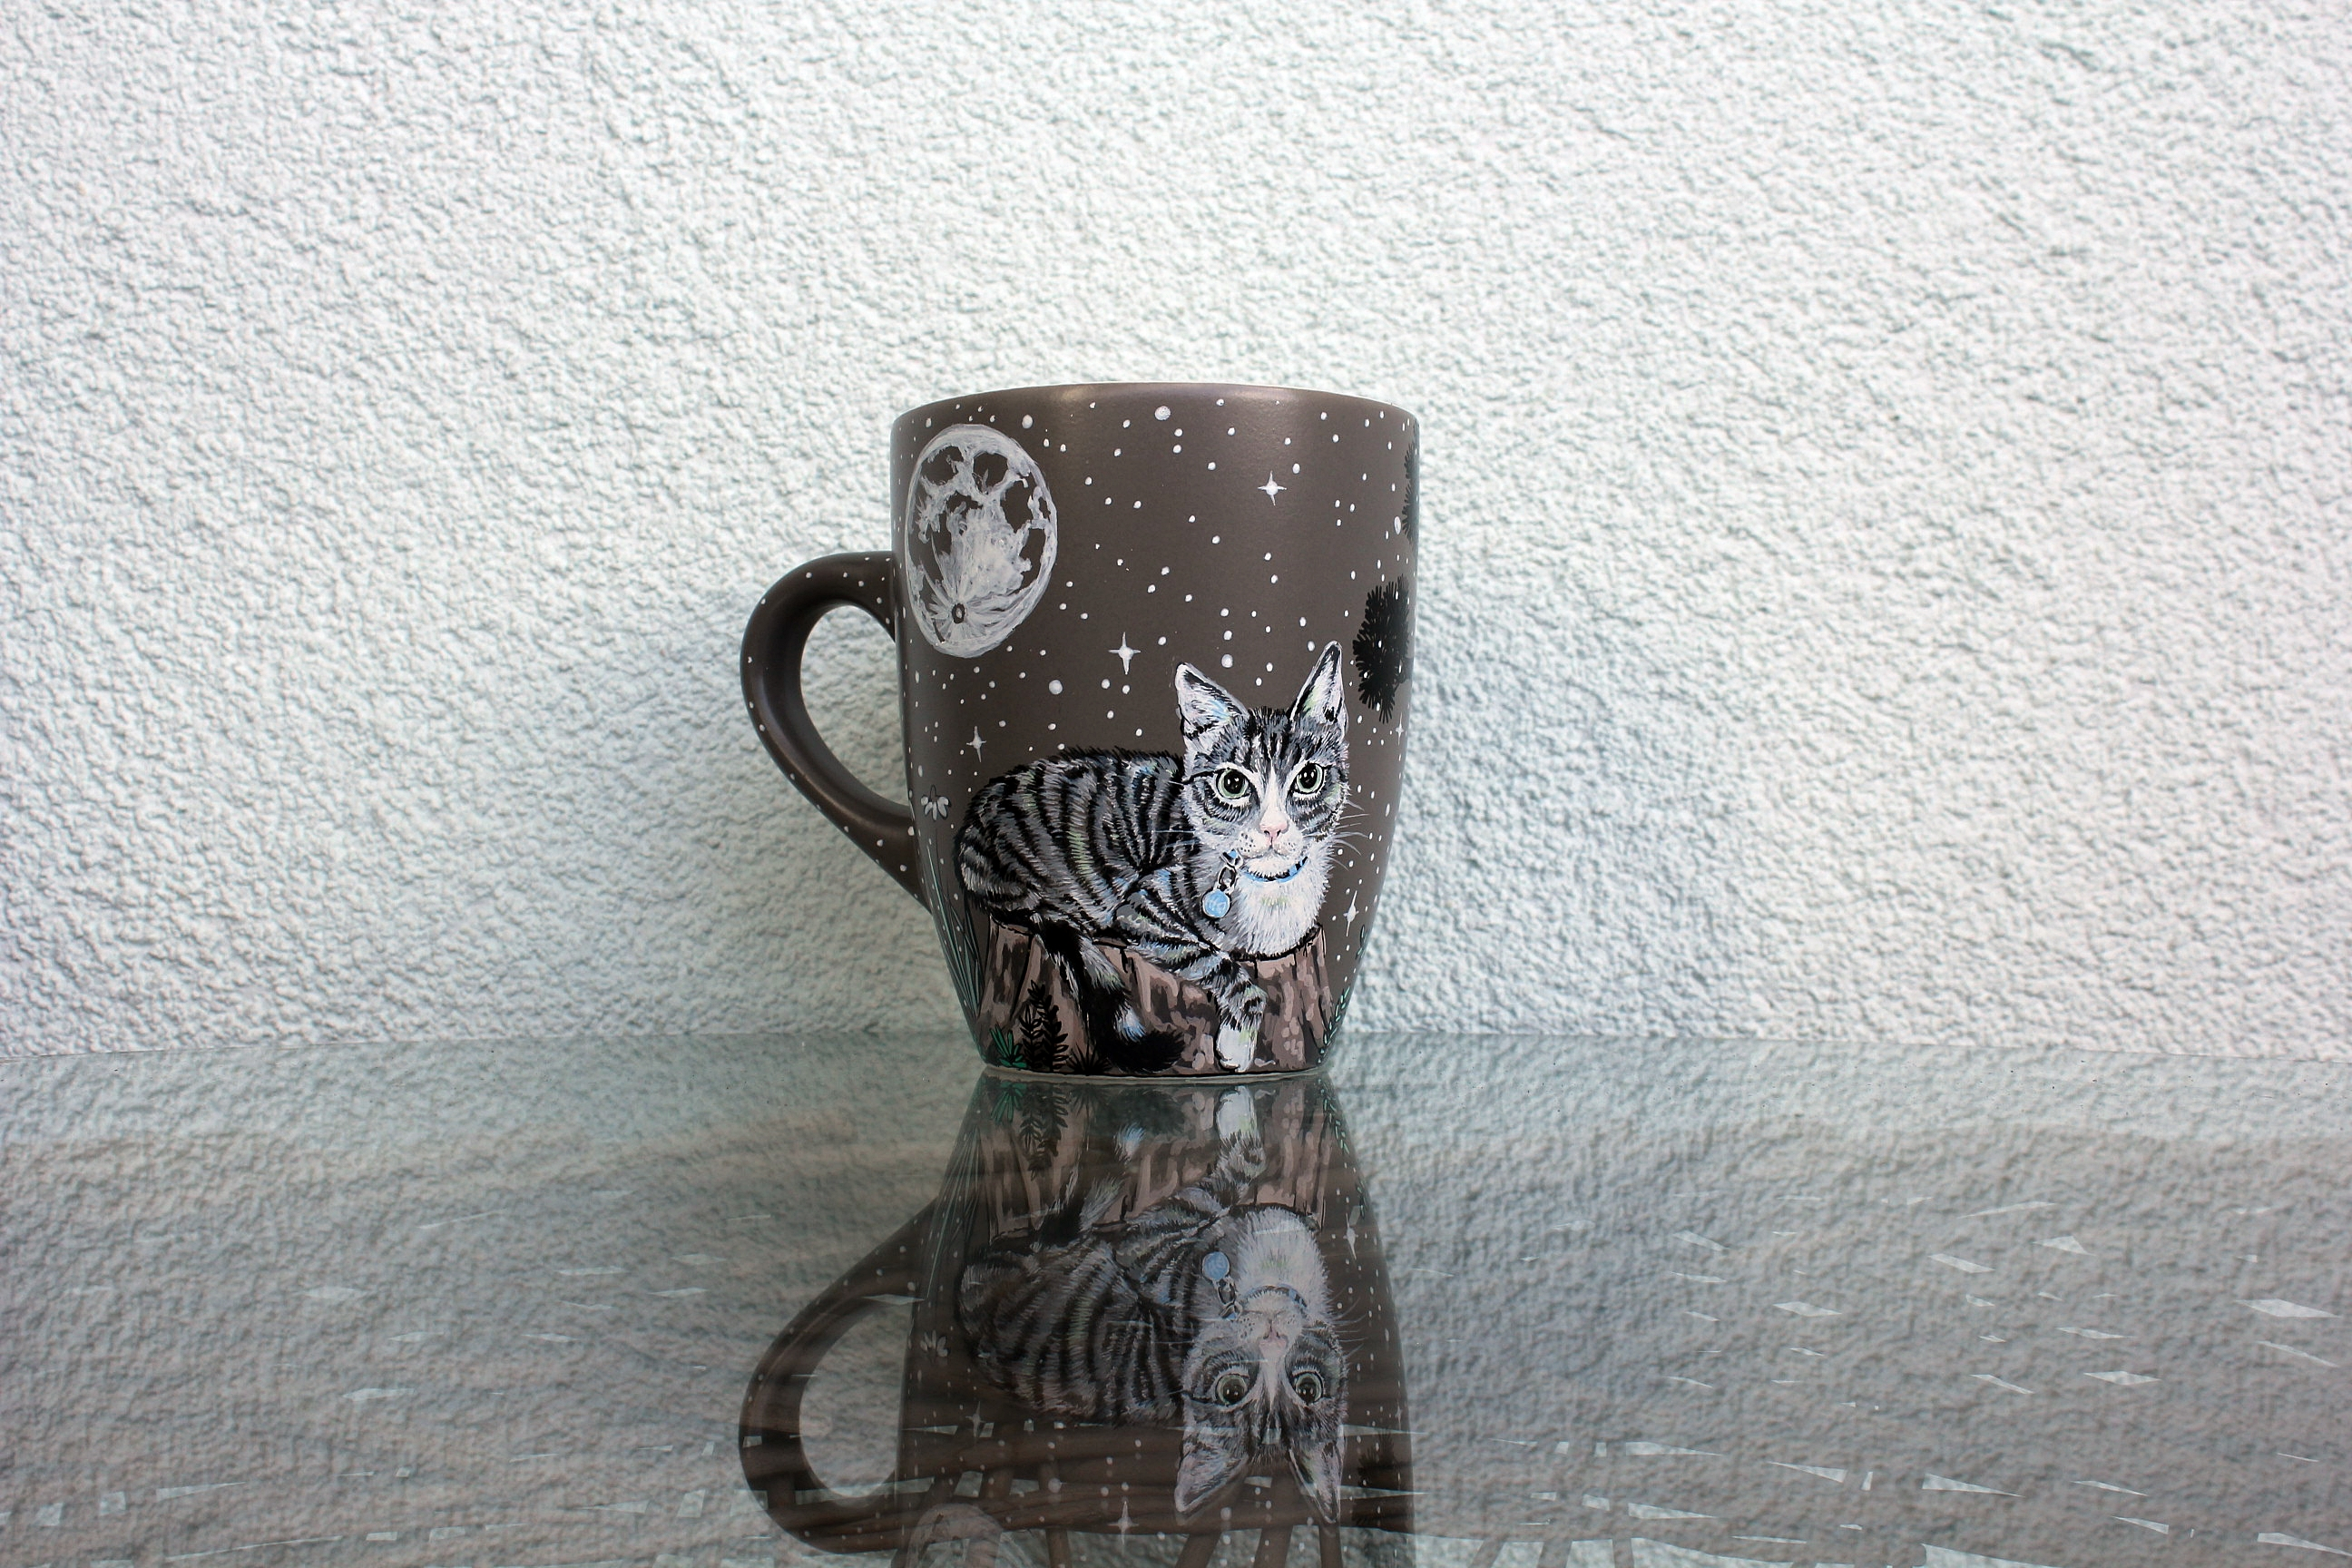 personalized custom pet mug with hand painted illustration cat mug chilling sleeping woods forest meadow moon moon phases stars yoga coffe mug cup 11